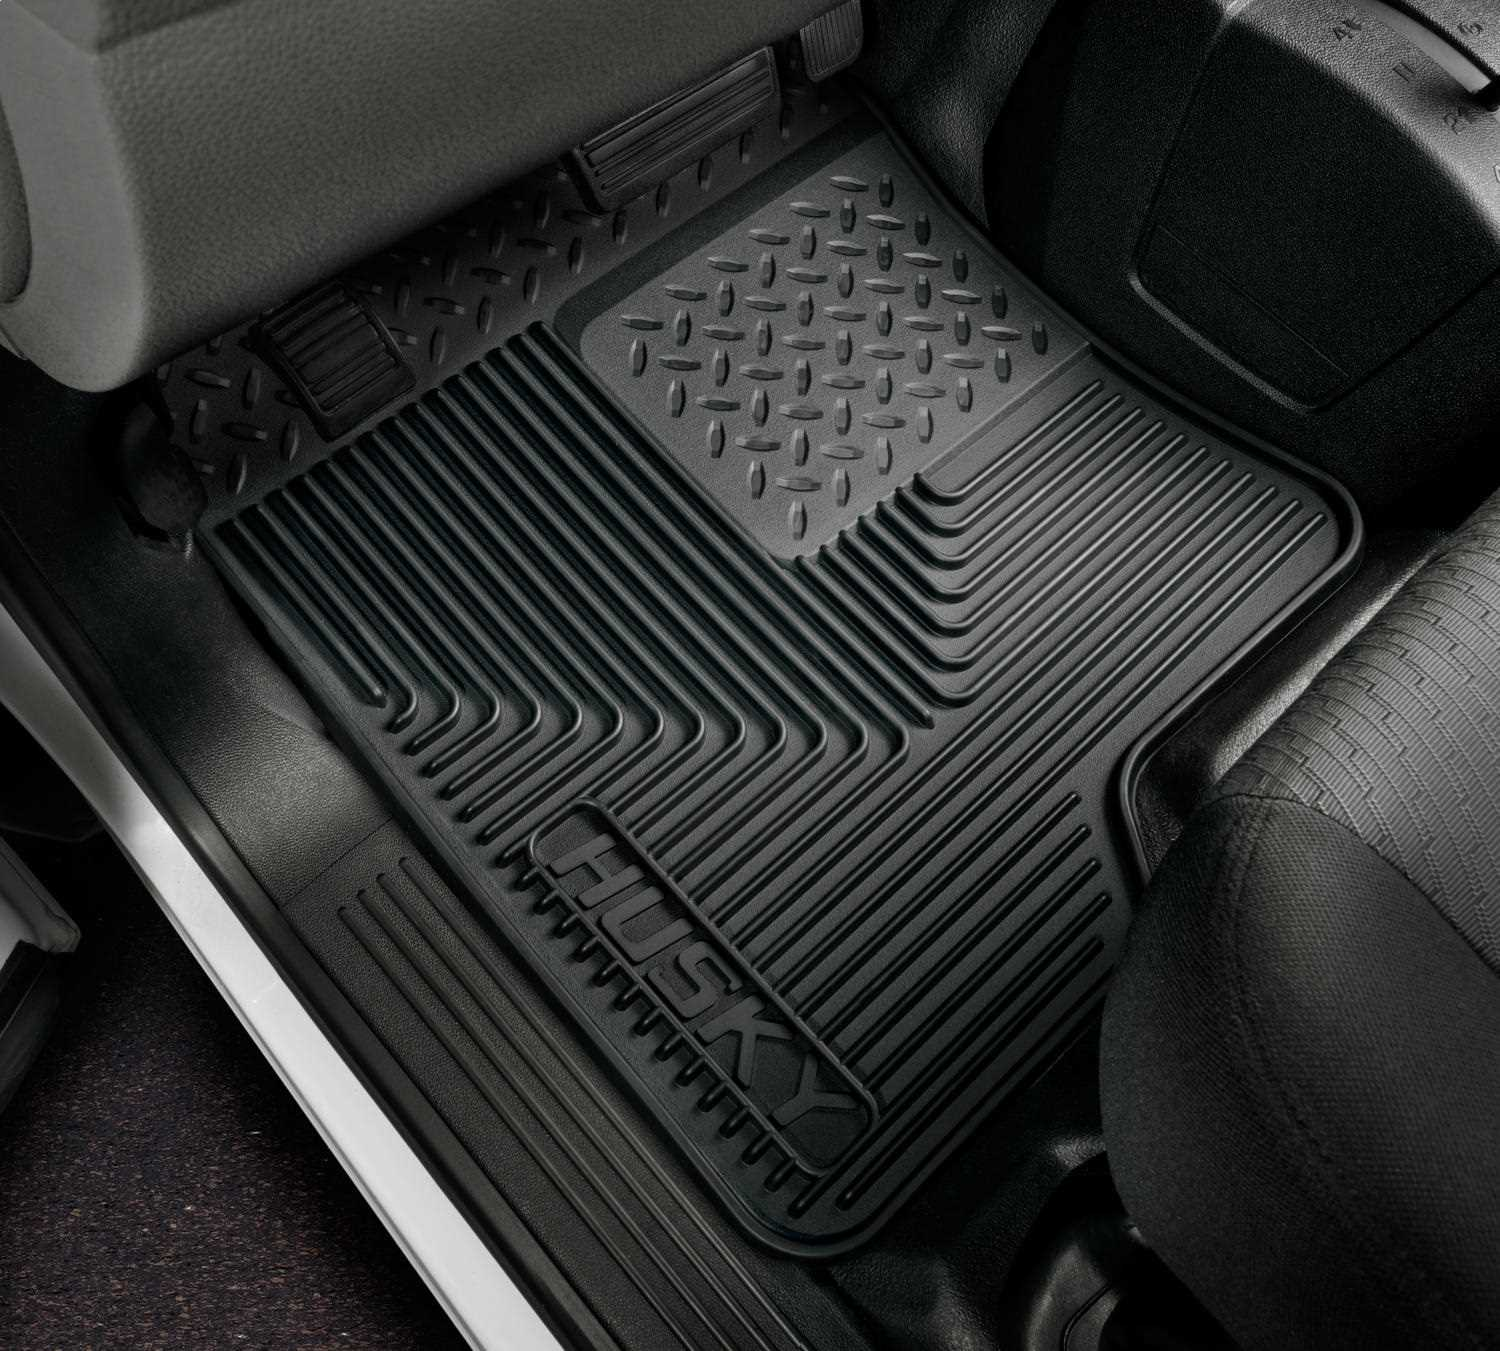 integra liners liner mats mat others acura nsx floor husky oem and for ref